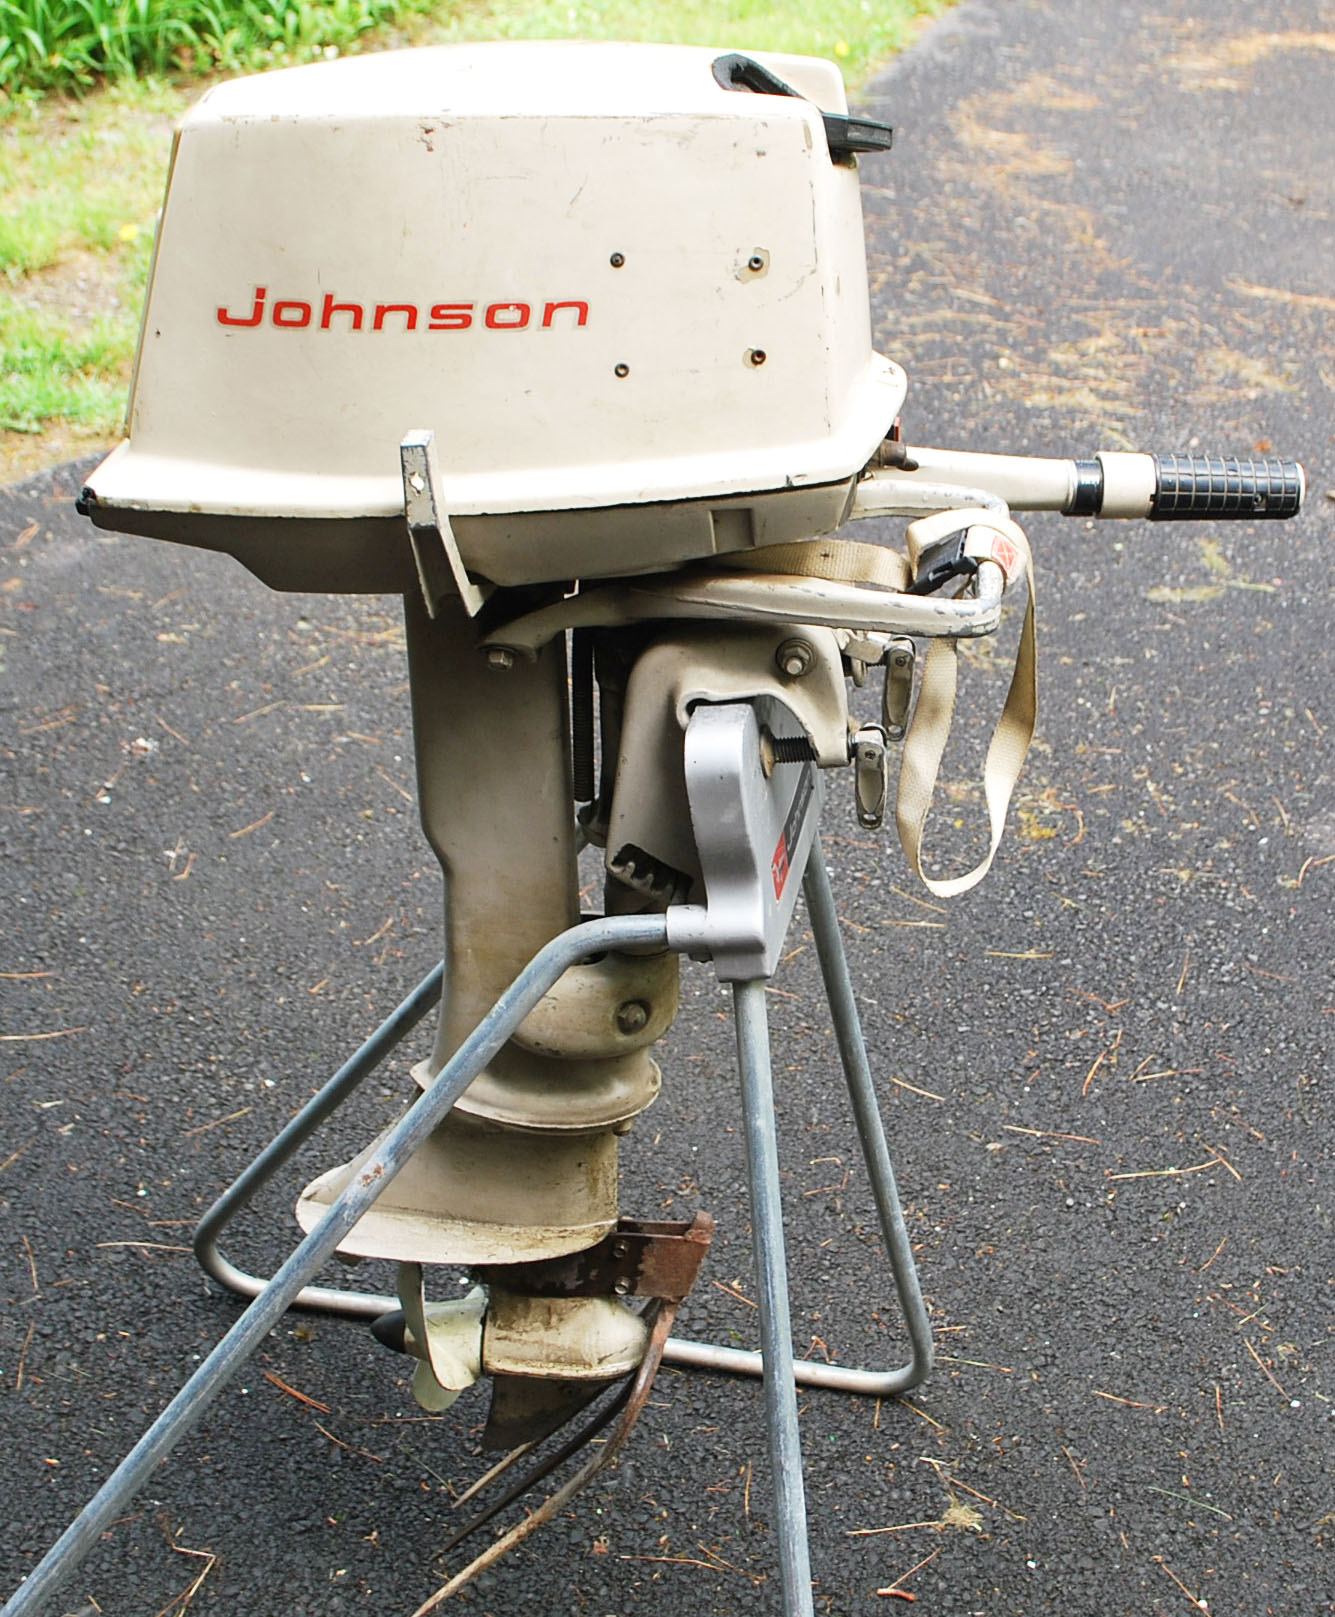 Parts for 1964 Johnson 5 1/2 HP Outboard Motor